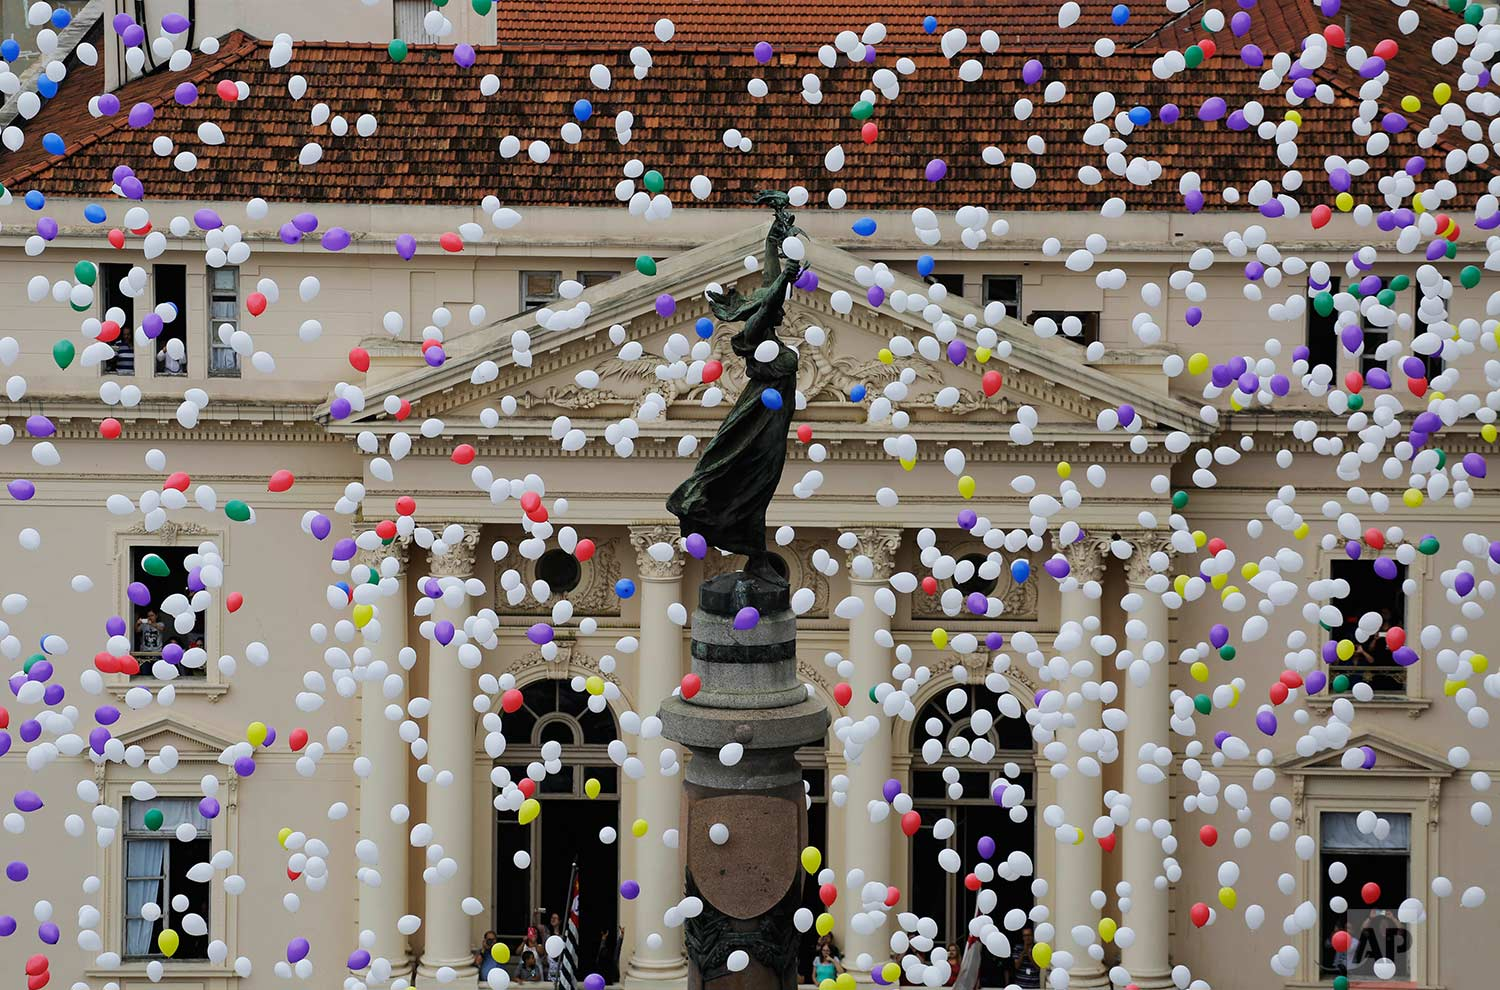 Members of Sao Paulo's Commerce Association release fifty thousand balloons to celebrate the New Year in Sao Paulo, Brazil, Friday, Dec. 29, 2017. (AP Photo/Nelson Antoine)